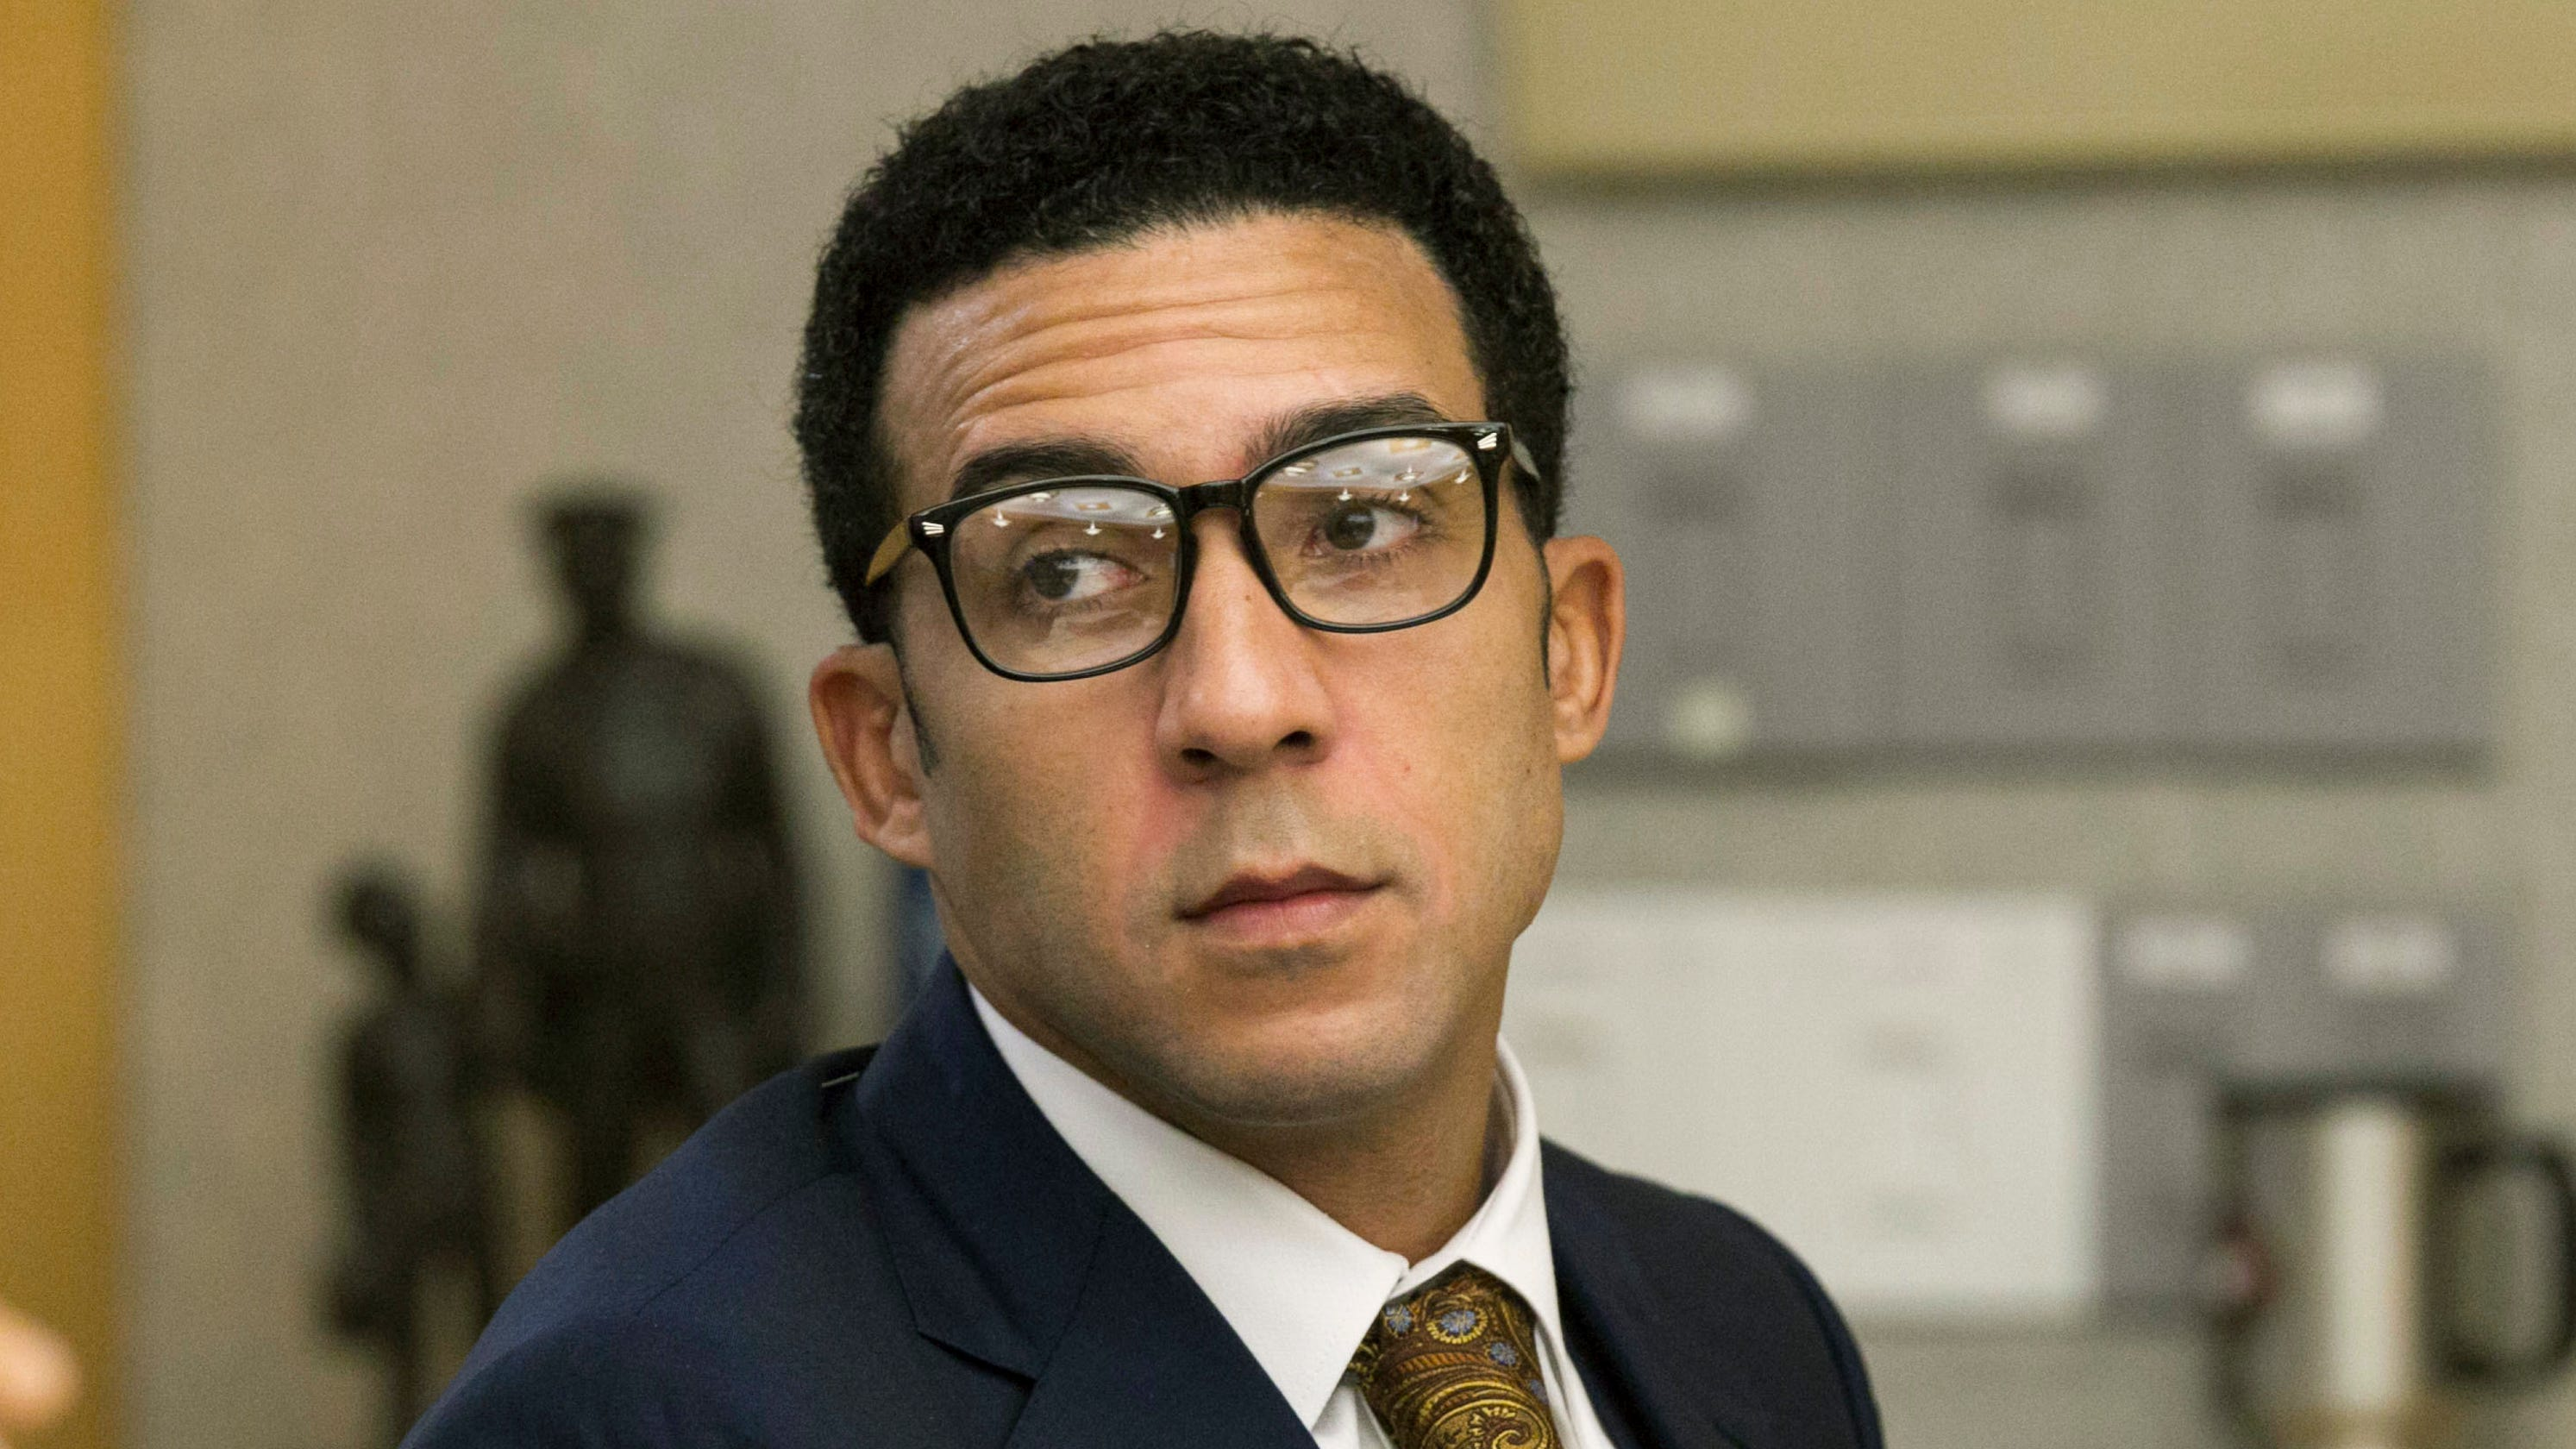 Ex-NFL star Kellen Winslow II agrees to 14 years behind bars for sex crimes